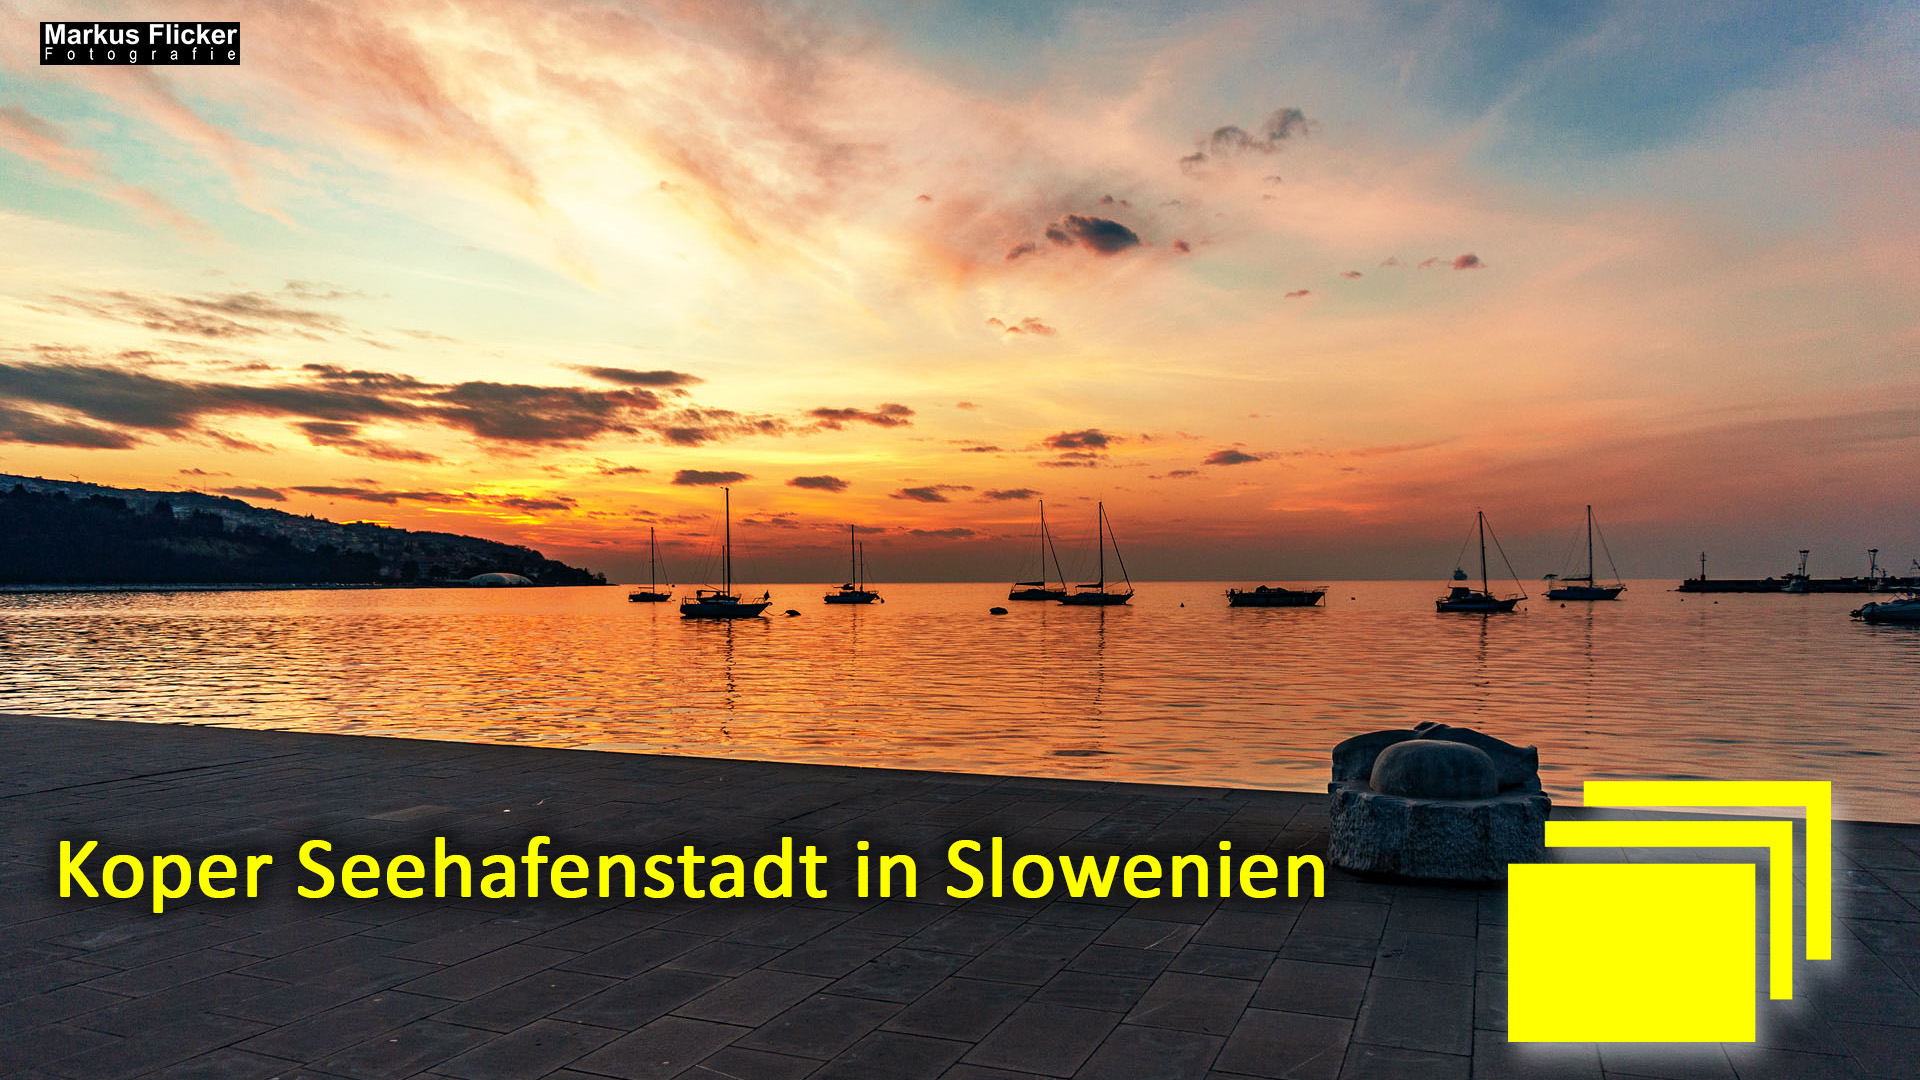 Koper Seehafenstadt in Slowenien